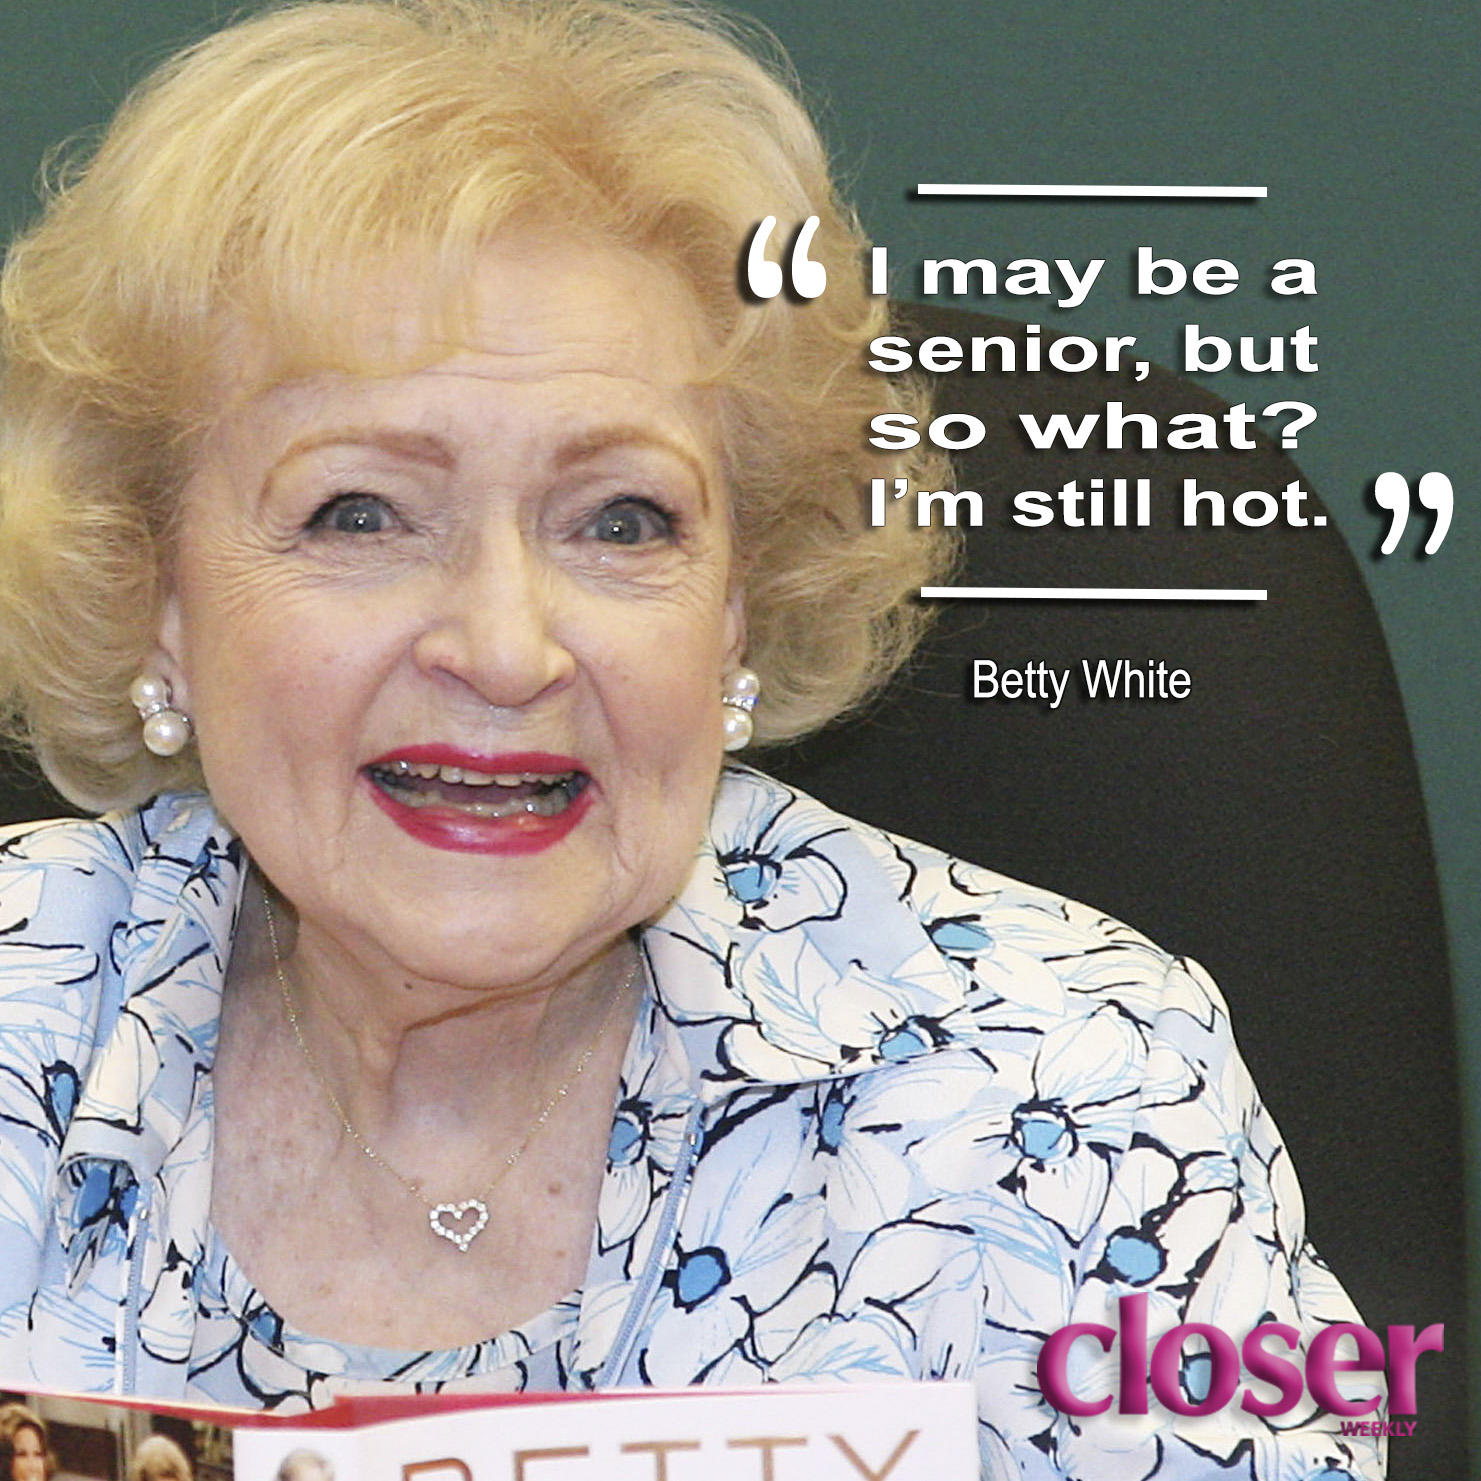 da116146 Betty White's Best Quotes: Read Her Funniest Lines On Her Birthday!